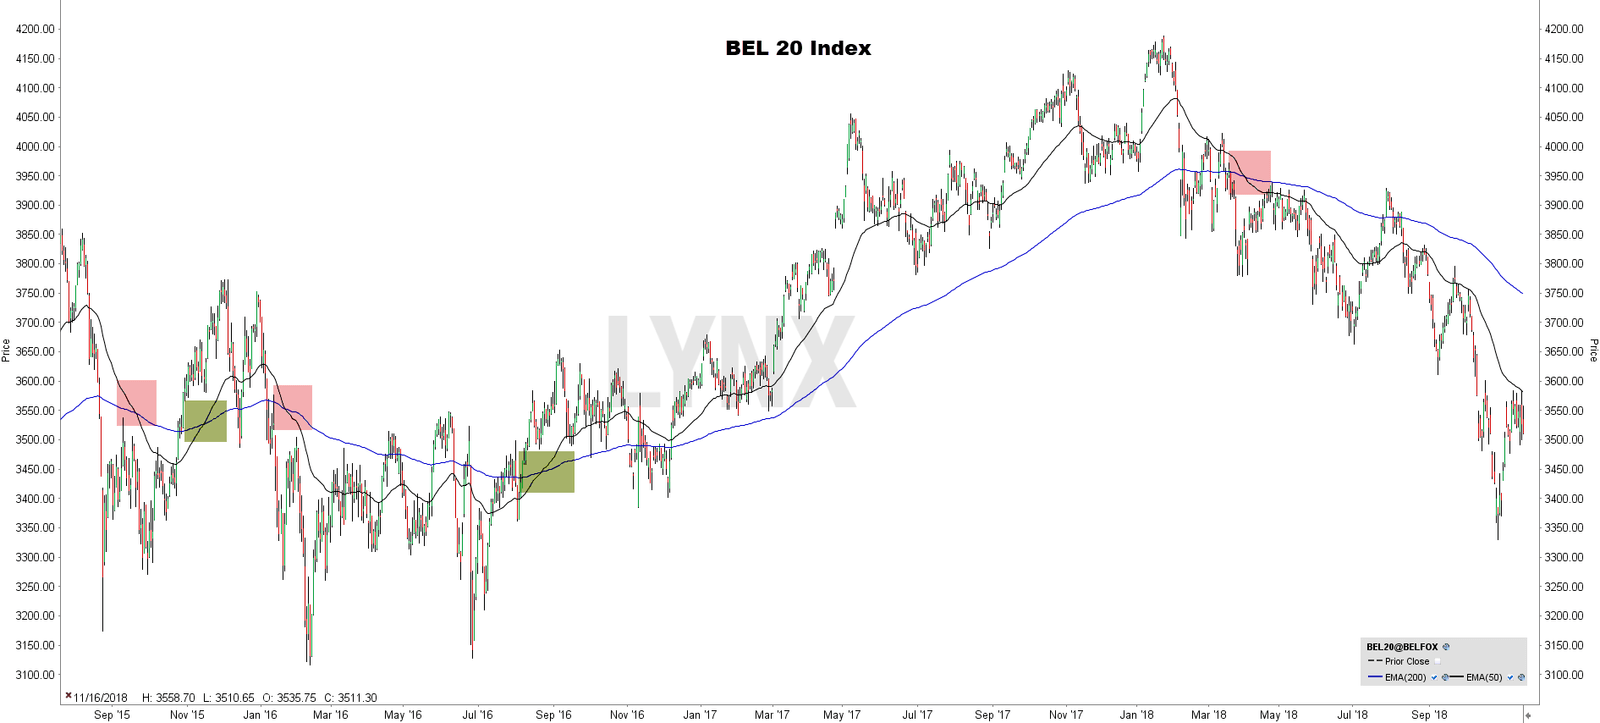 Moving average crossover bel 20 - MA Crossover